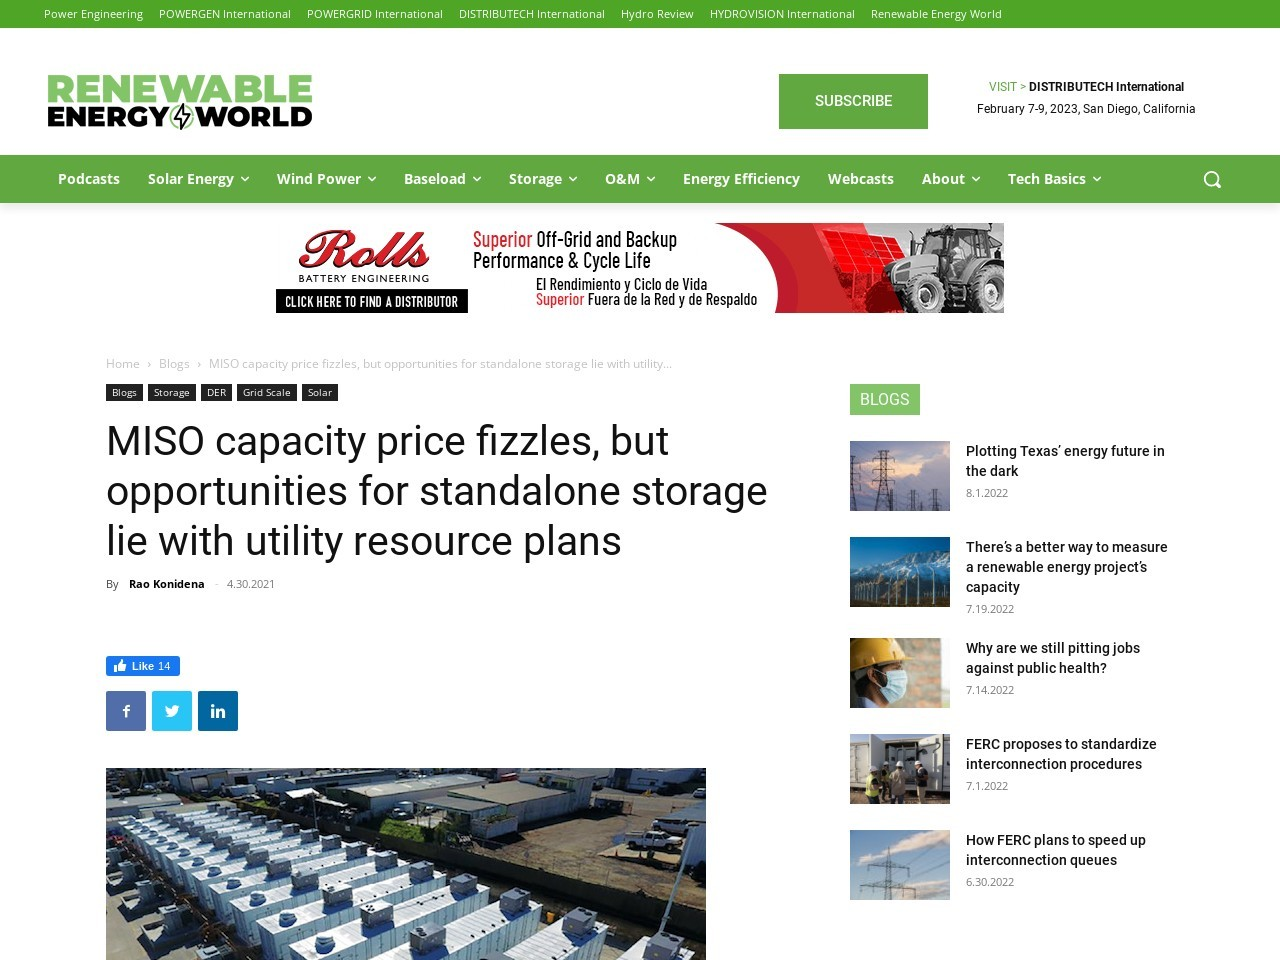 MISO capacity price fizzles, but opportunities for standalone storage lie with utility resource plans